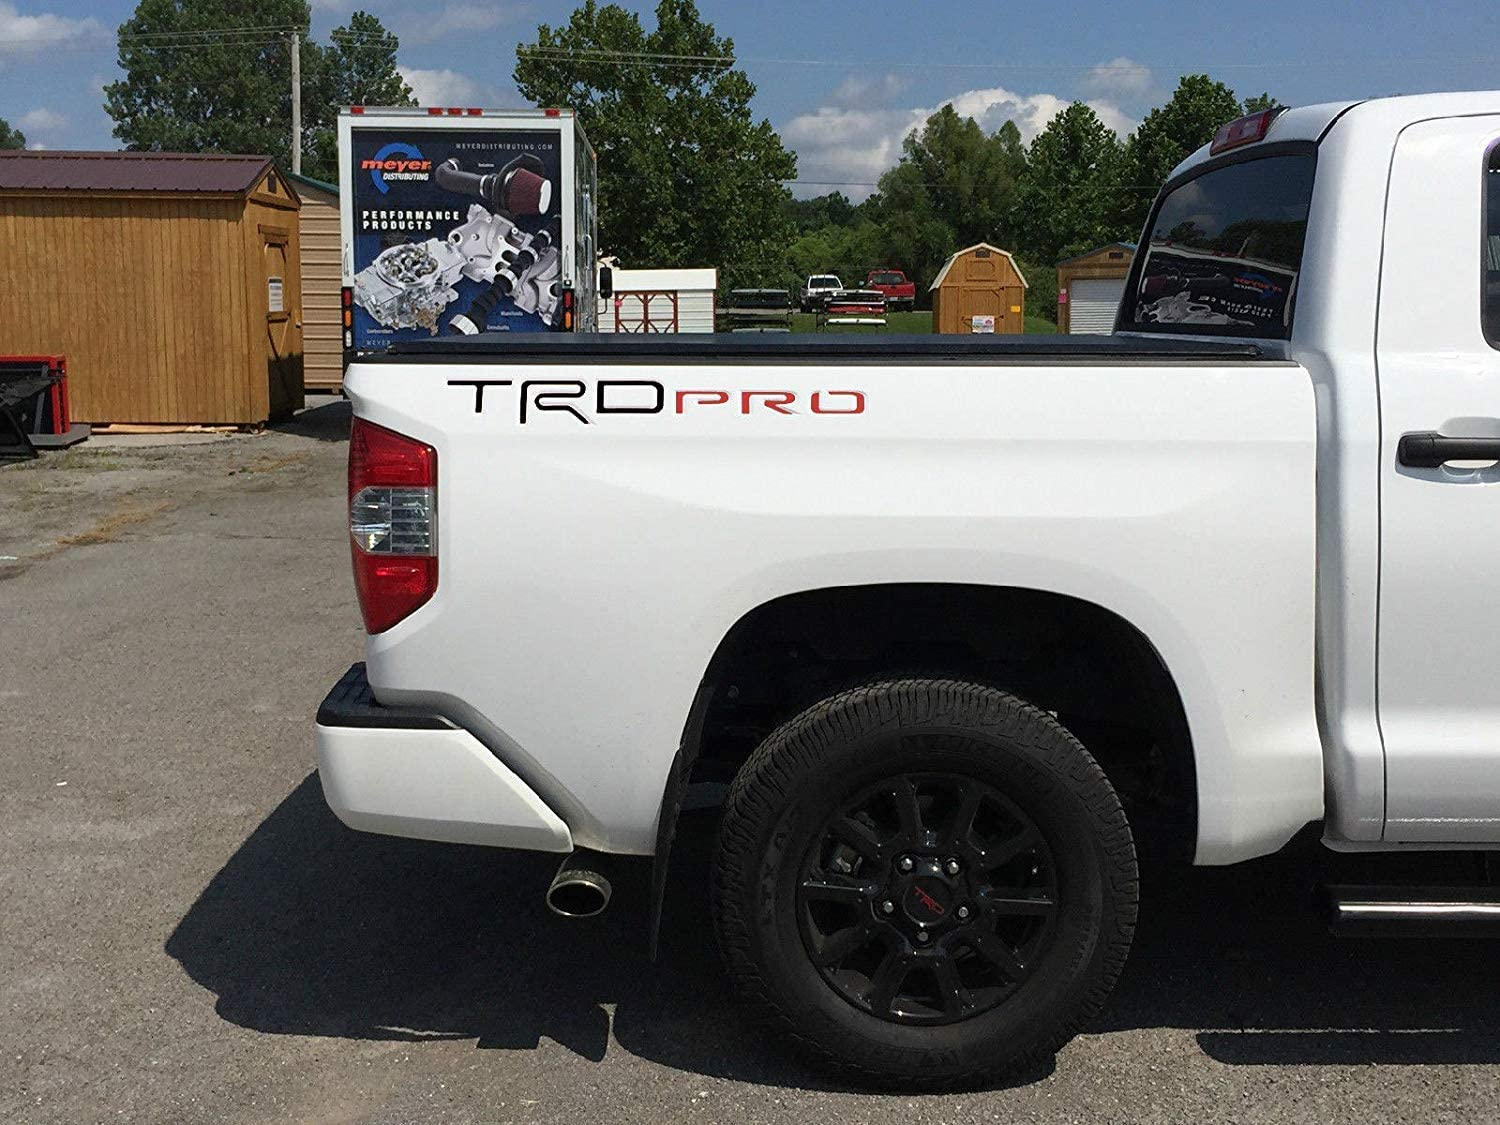 Black BDTrims Truck Bed TRD Pro Plastic Letters Inserts fits 2014-2019 Tundra Models